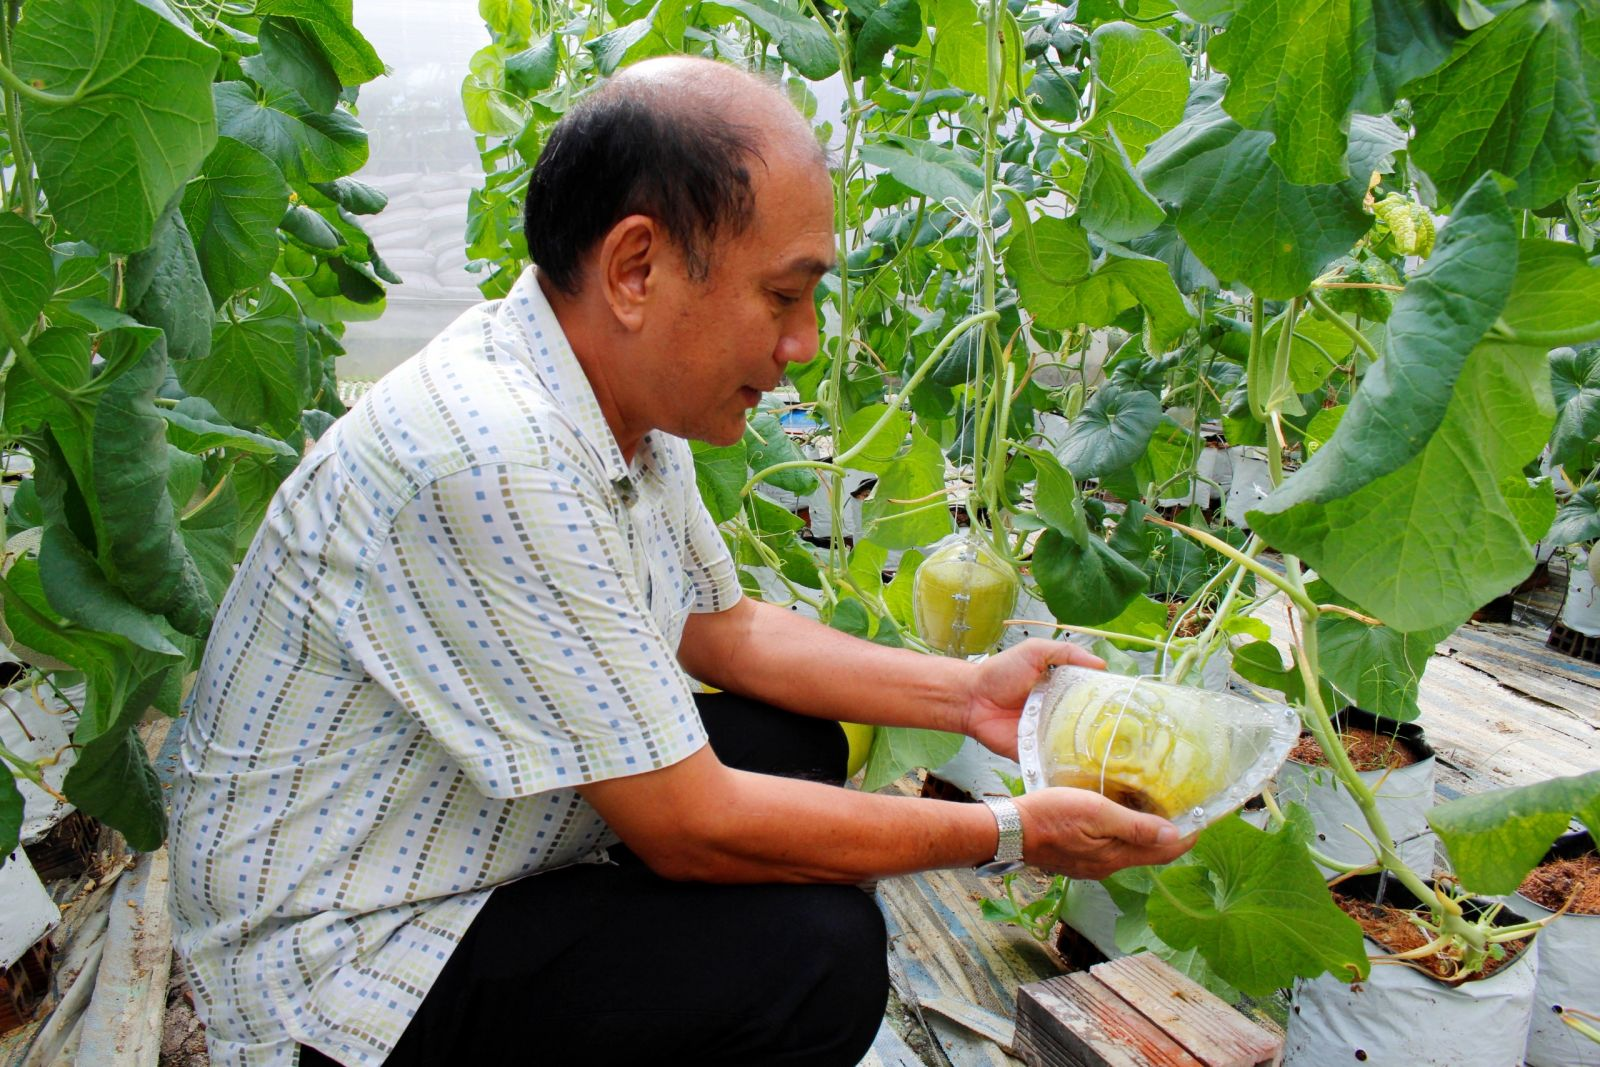 Planting cantaloupe with Israeli technology brings high economic efficiency